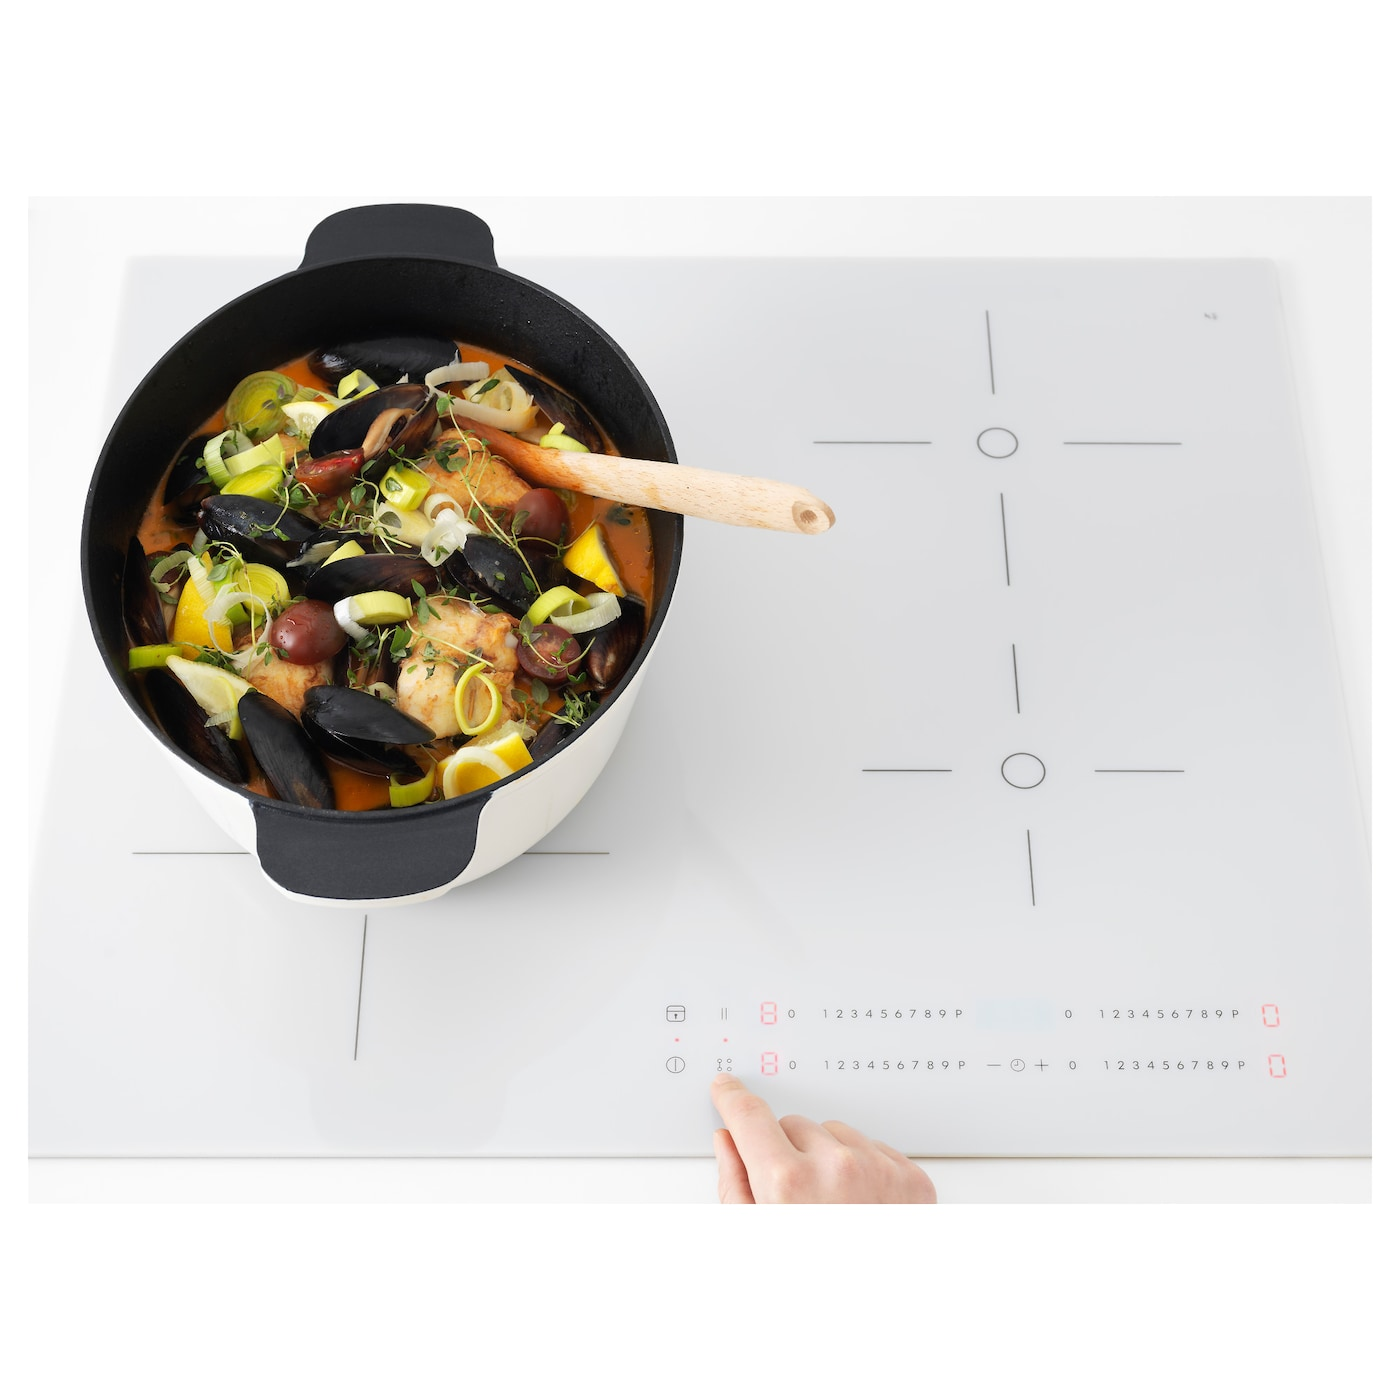 IKEA BEJUBLAD induction hob with bridge function